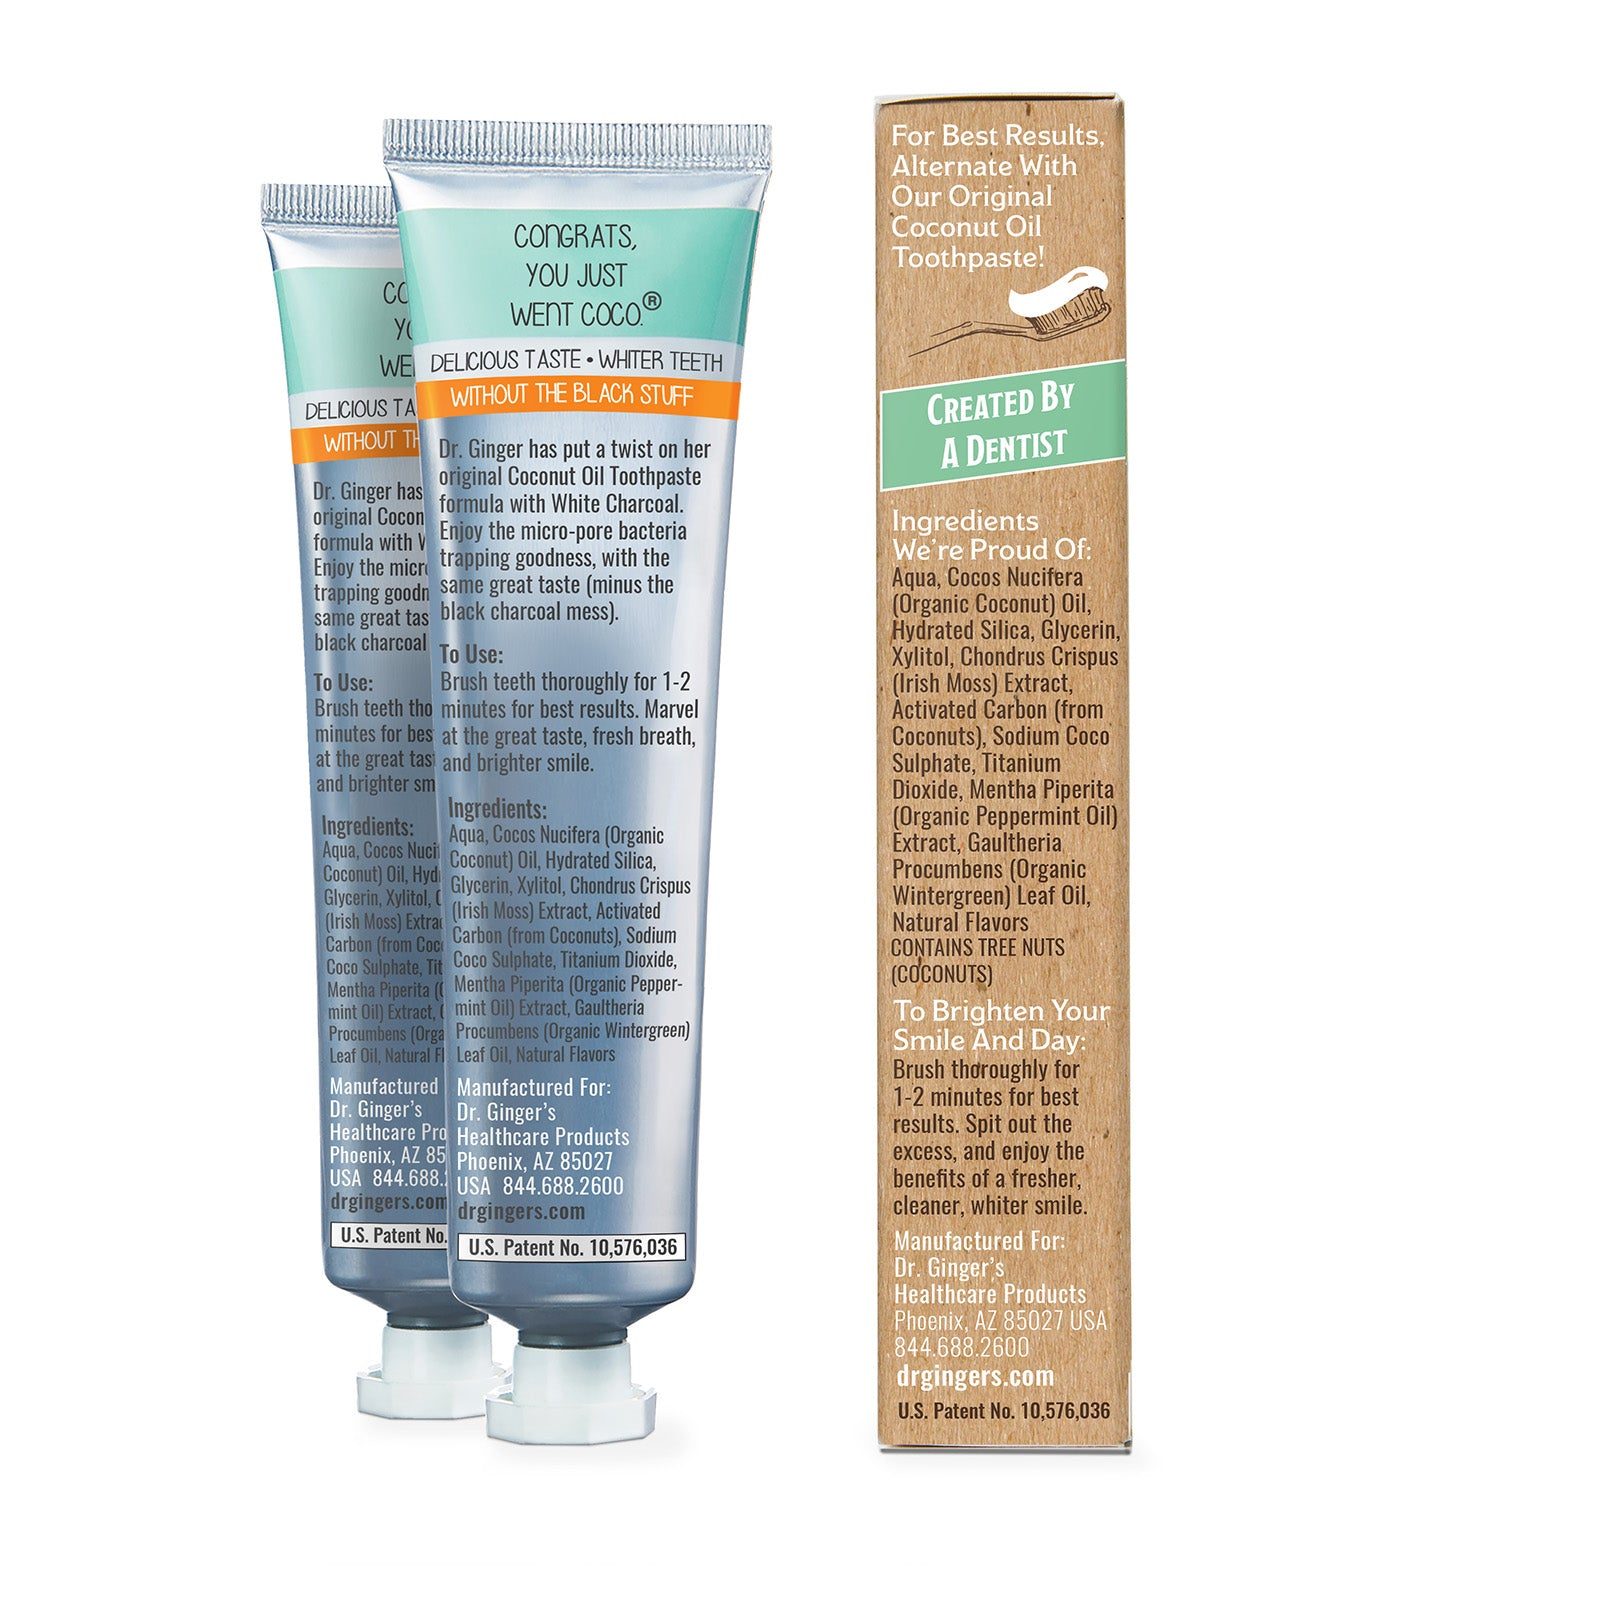 Dr. Ginger's White Charcoal Toothpaste, Tube and Box Displaying The Ingredients Panel.